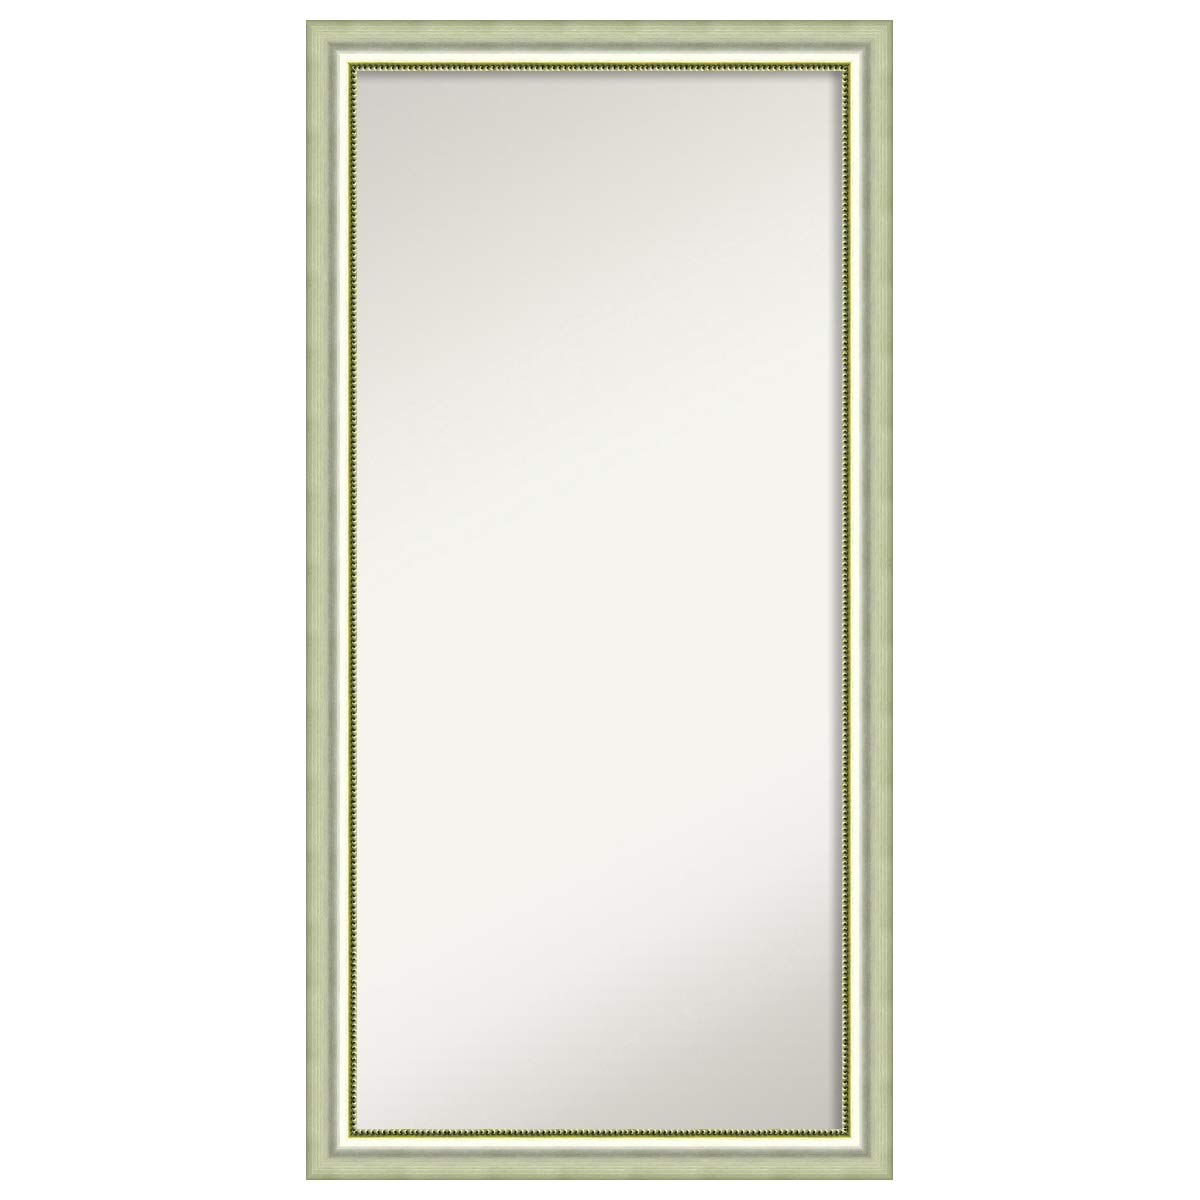 Trendy Traditional Square Glass Wall Mirrors Regarding Amazon: Amanti Art Framed Vegas Silver Solid Wood Wall Mirrors (View 11 of 20)